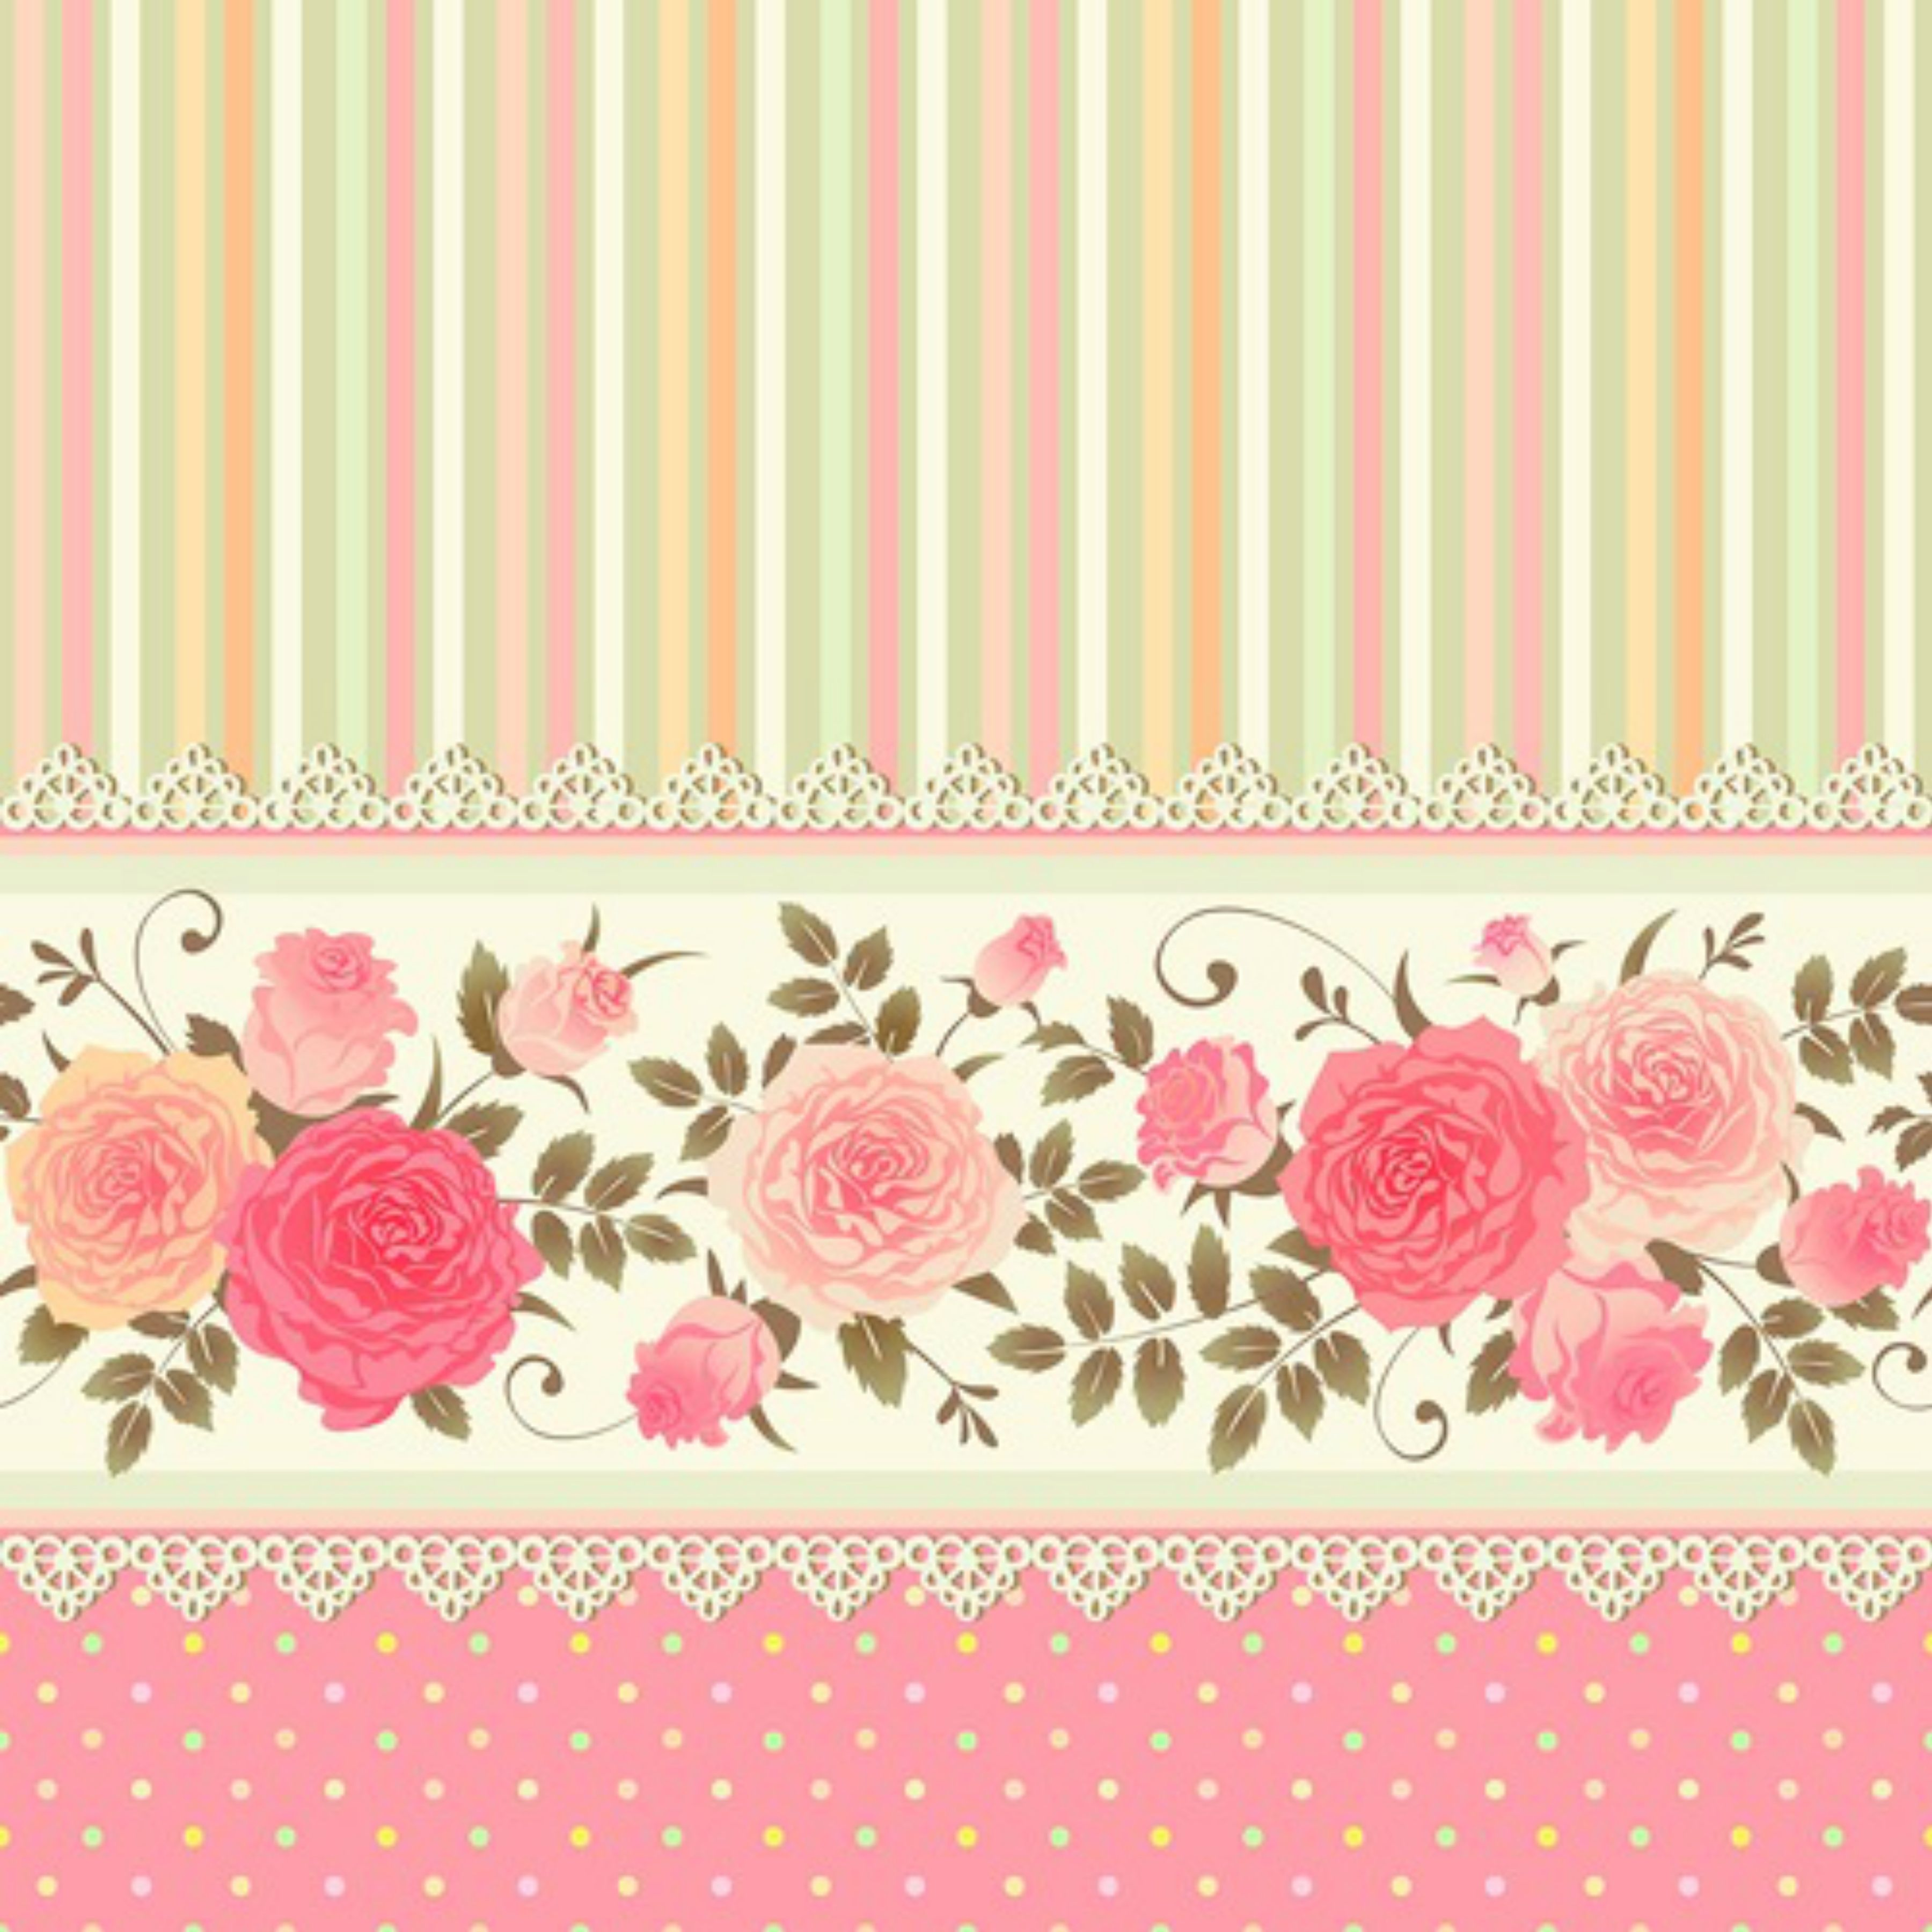 Pin by 🌈Vonnie🦄 Davis🌈 on Scrapbook Floral Borders♡Corners